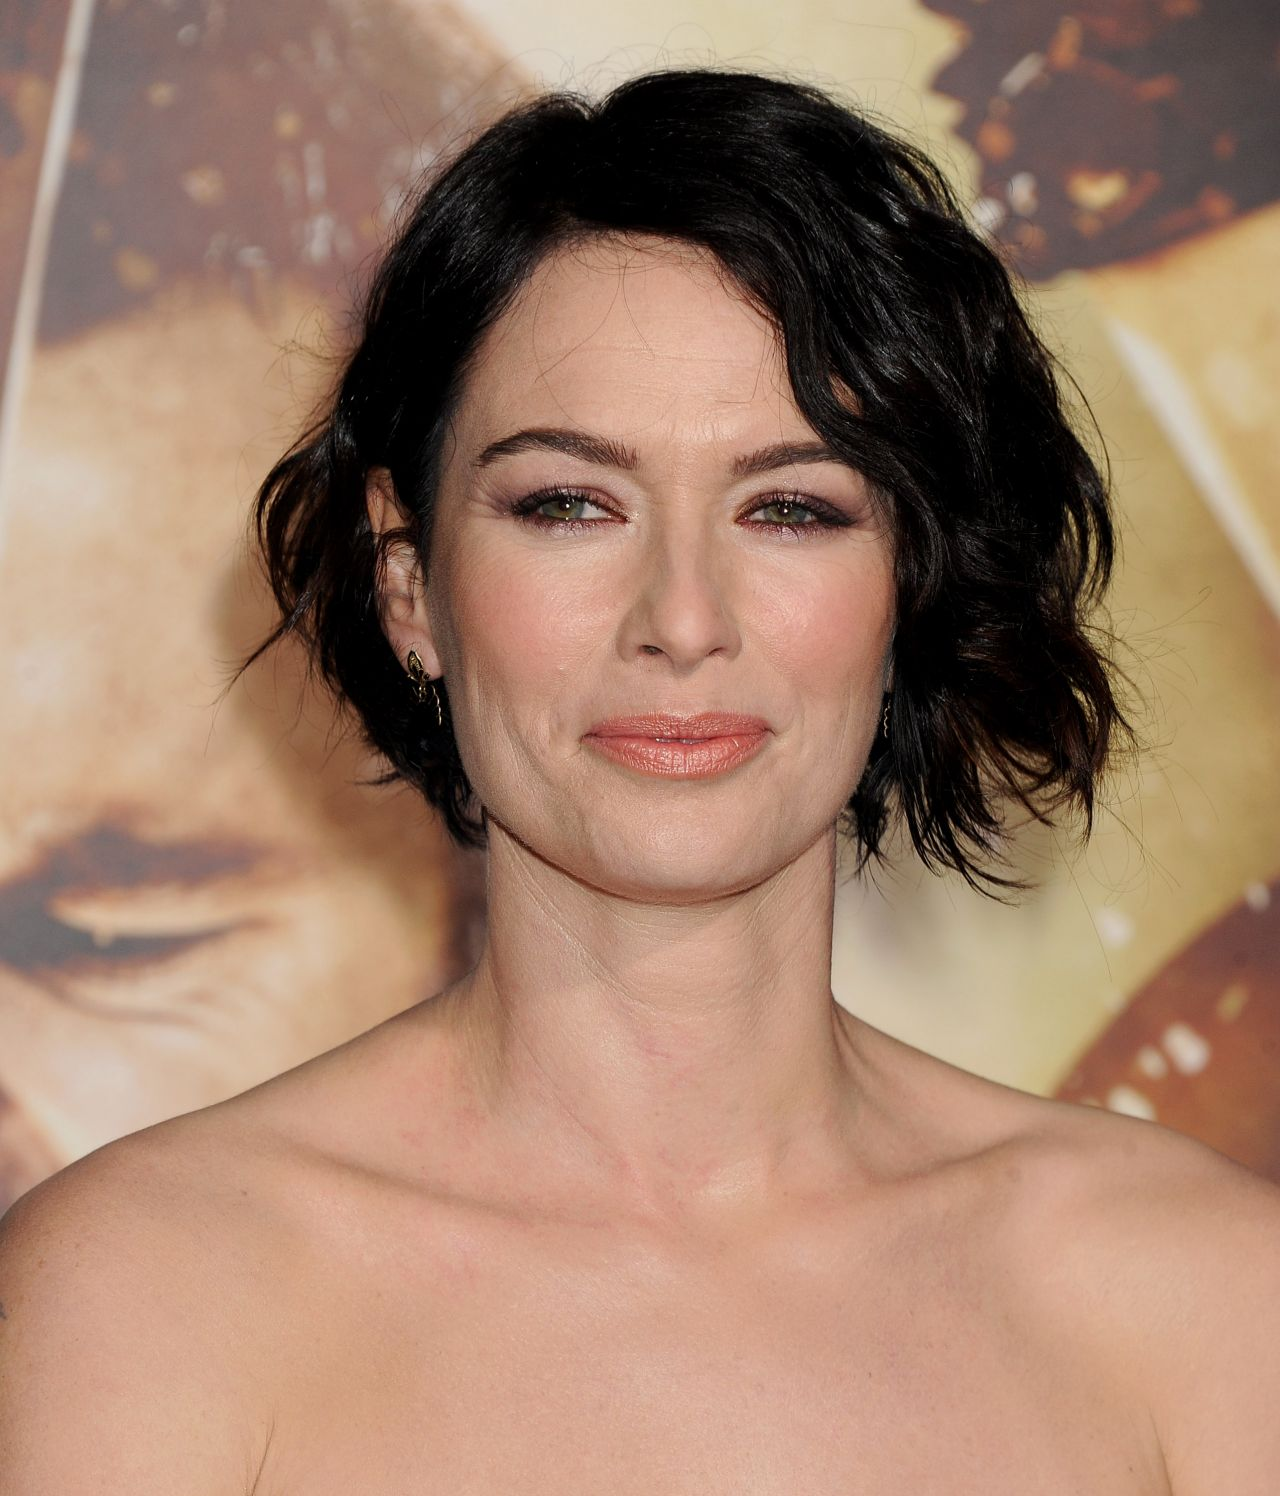 Lena Headey - '300 Rise of an Empire' Premiere in Los Angeles Rosie Huntington Whiteley Height